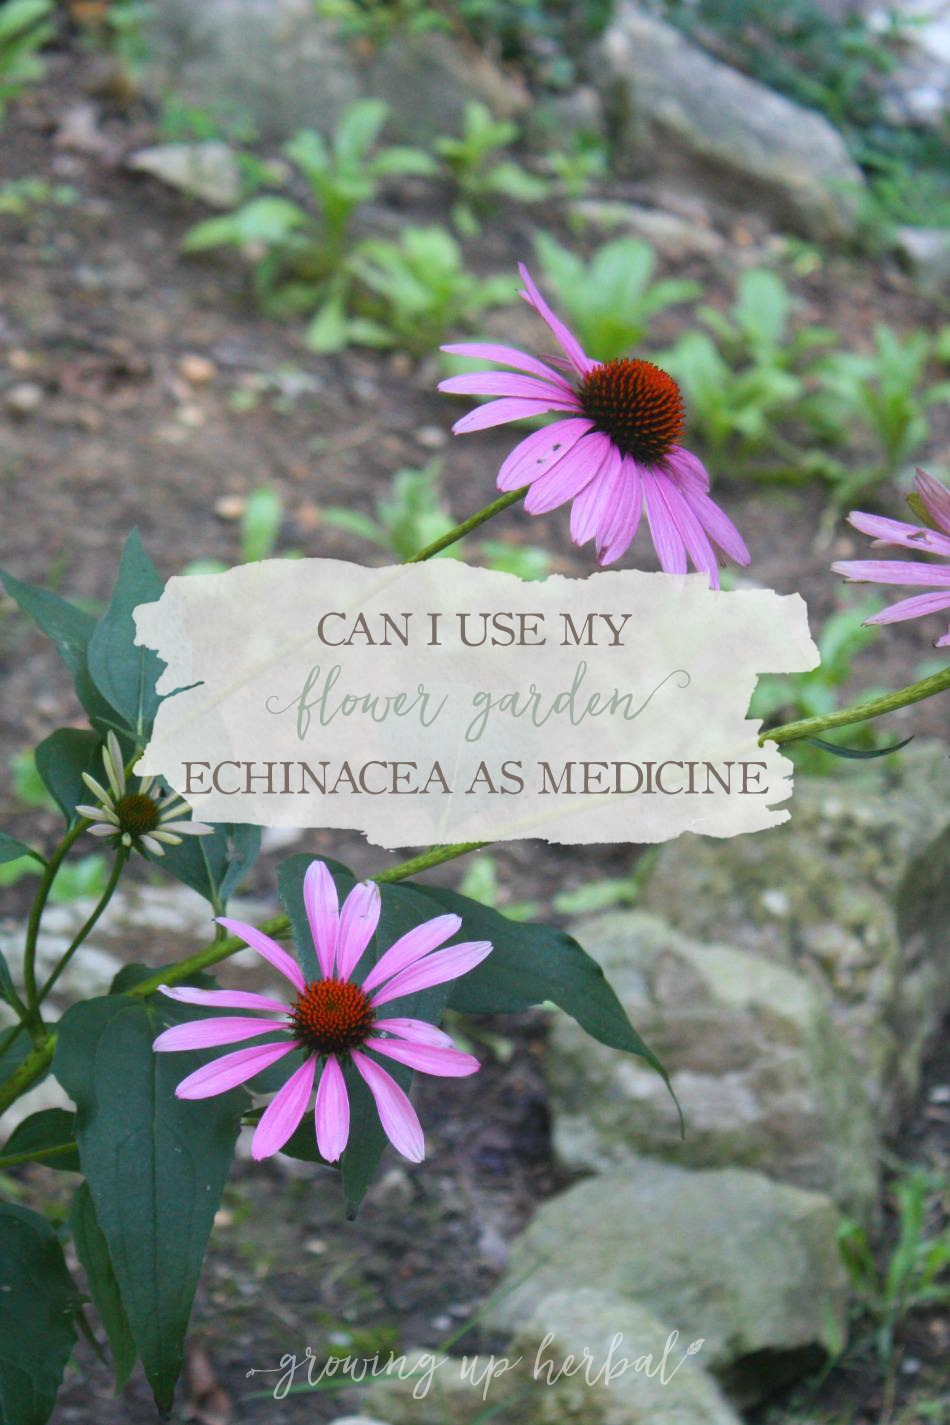 Can I Use My Flower Garden Echinacea For Medicine? | Growing Up Herbal | Ever wondered if the echinacea growing in your flower garden can be used medicinally?